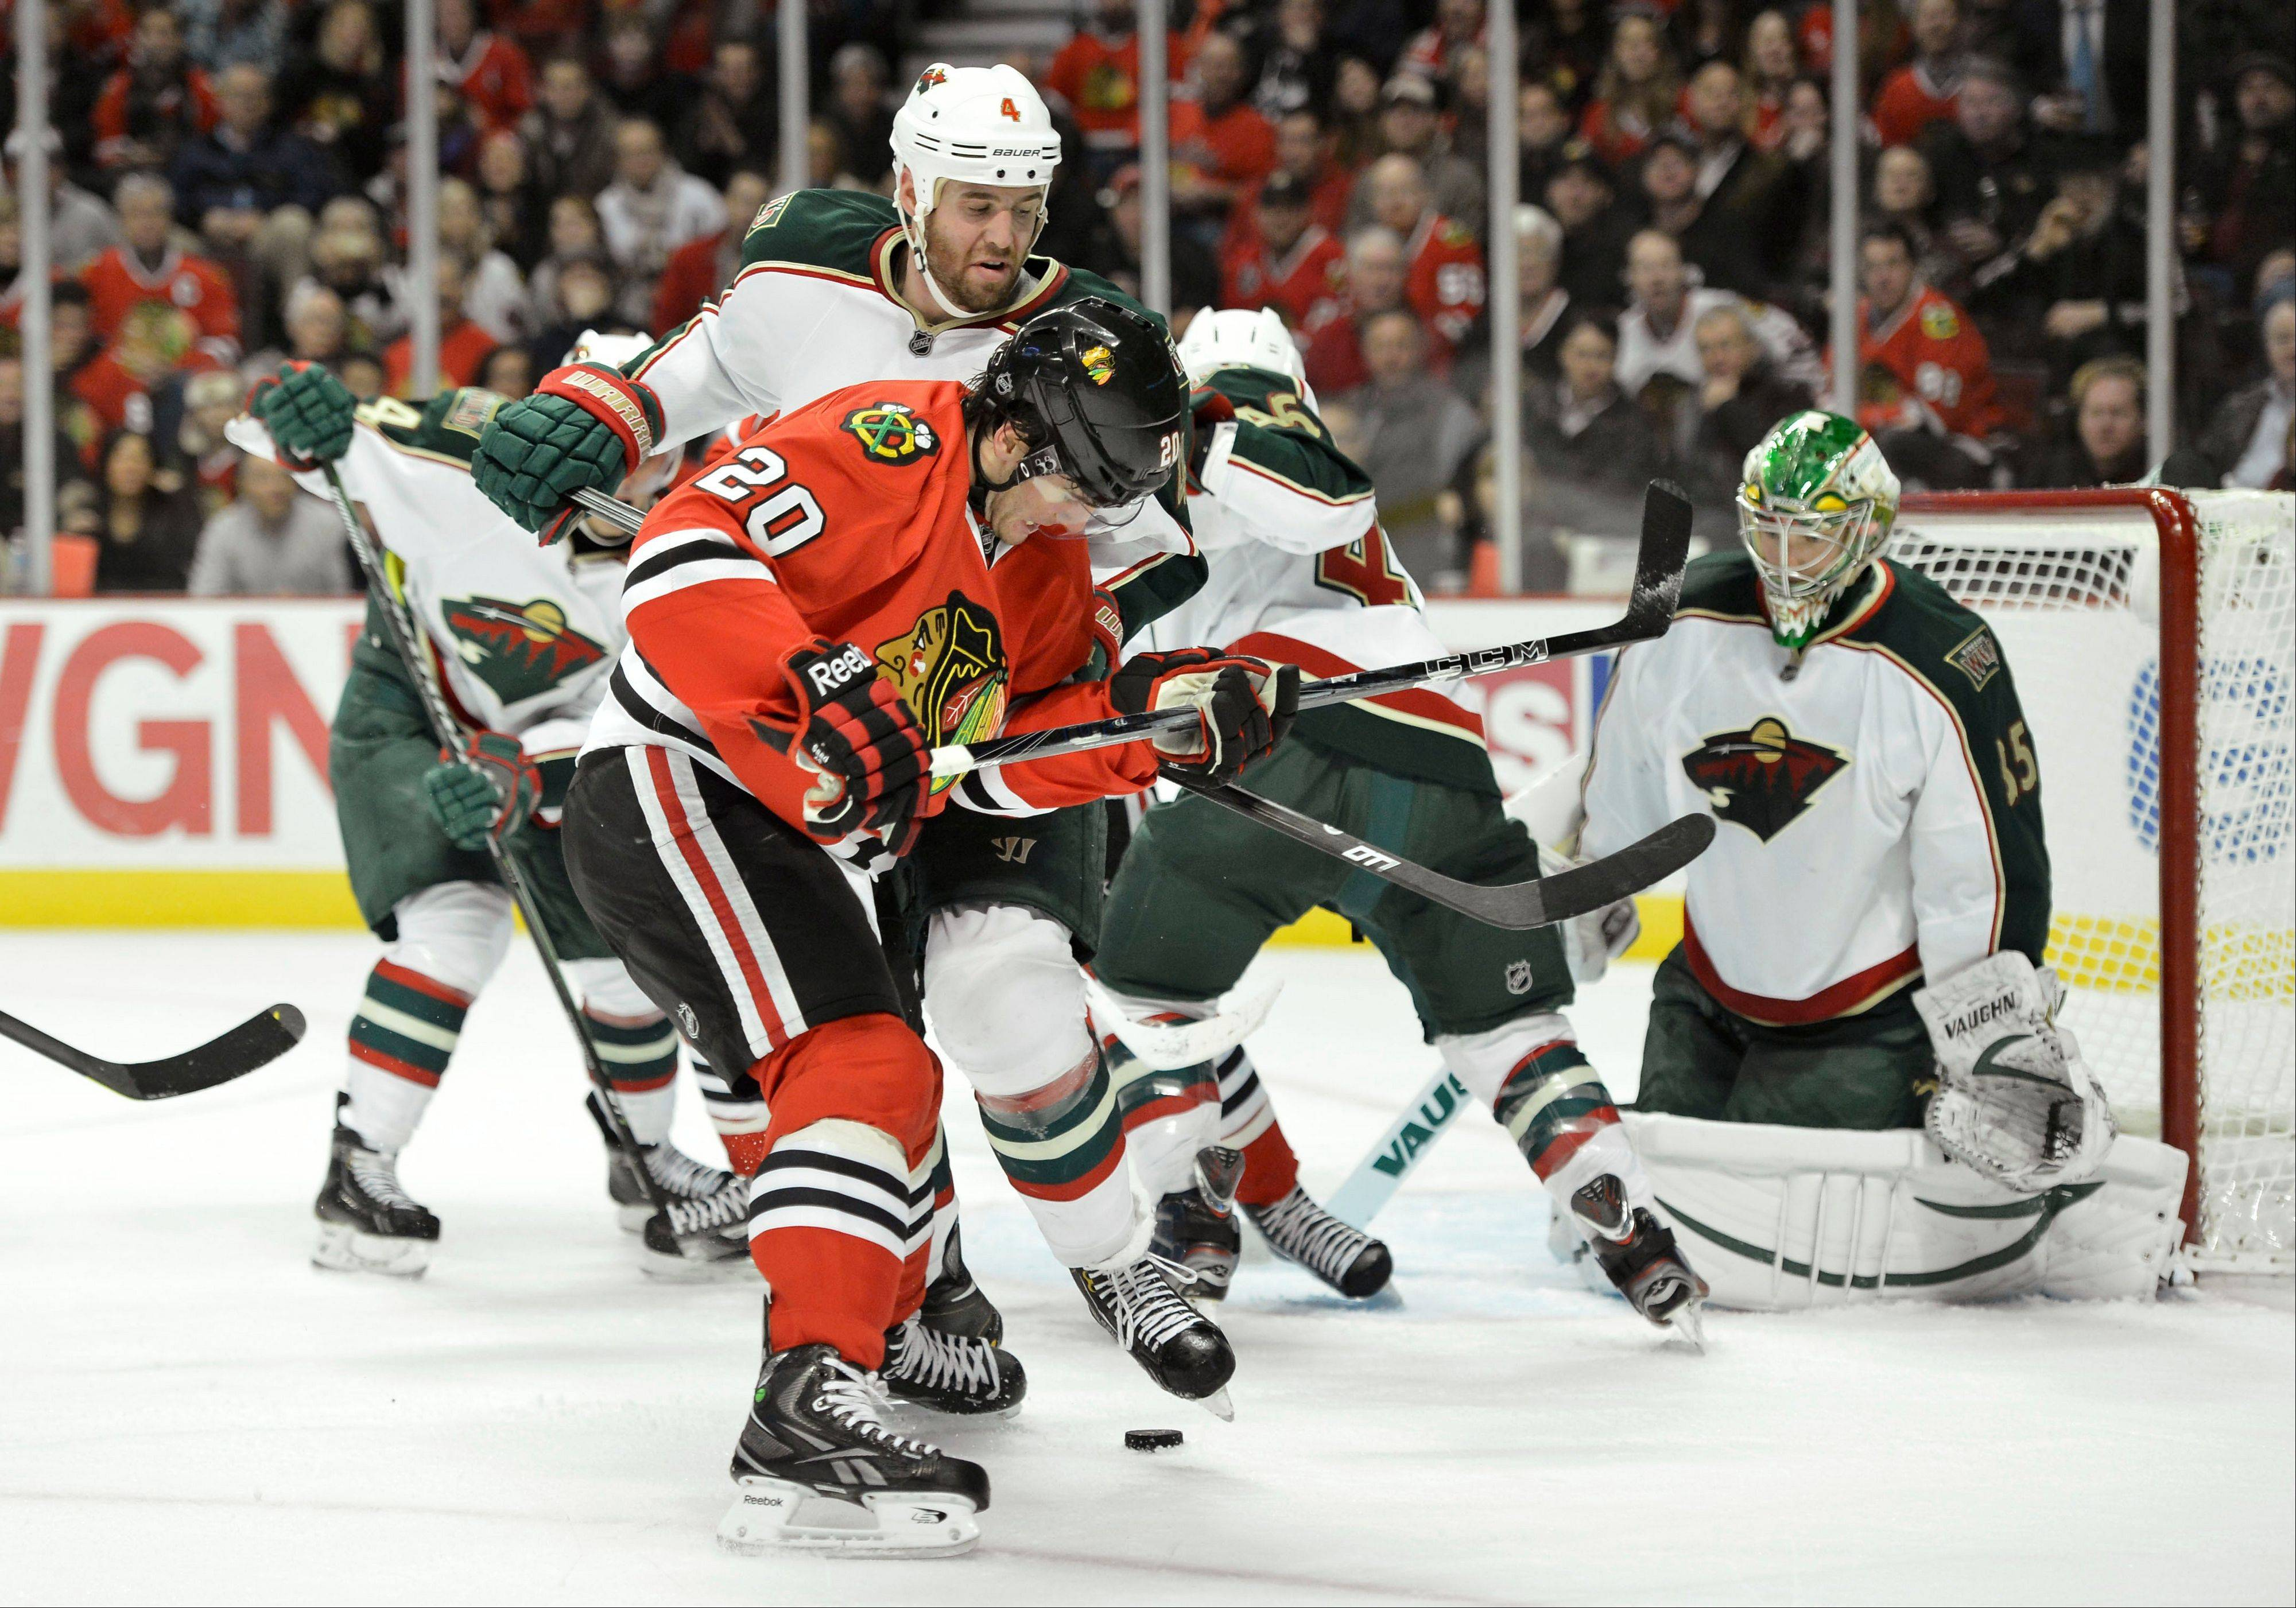 Minnesota Wild defenseman Clayton Stoner, center, pushes Chicago Blackhawks left wing Brandon Saad, left, off the puck during the second period.